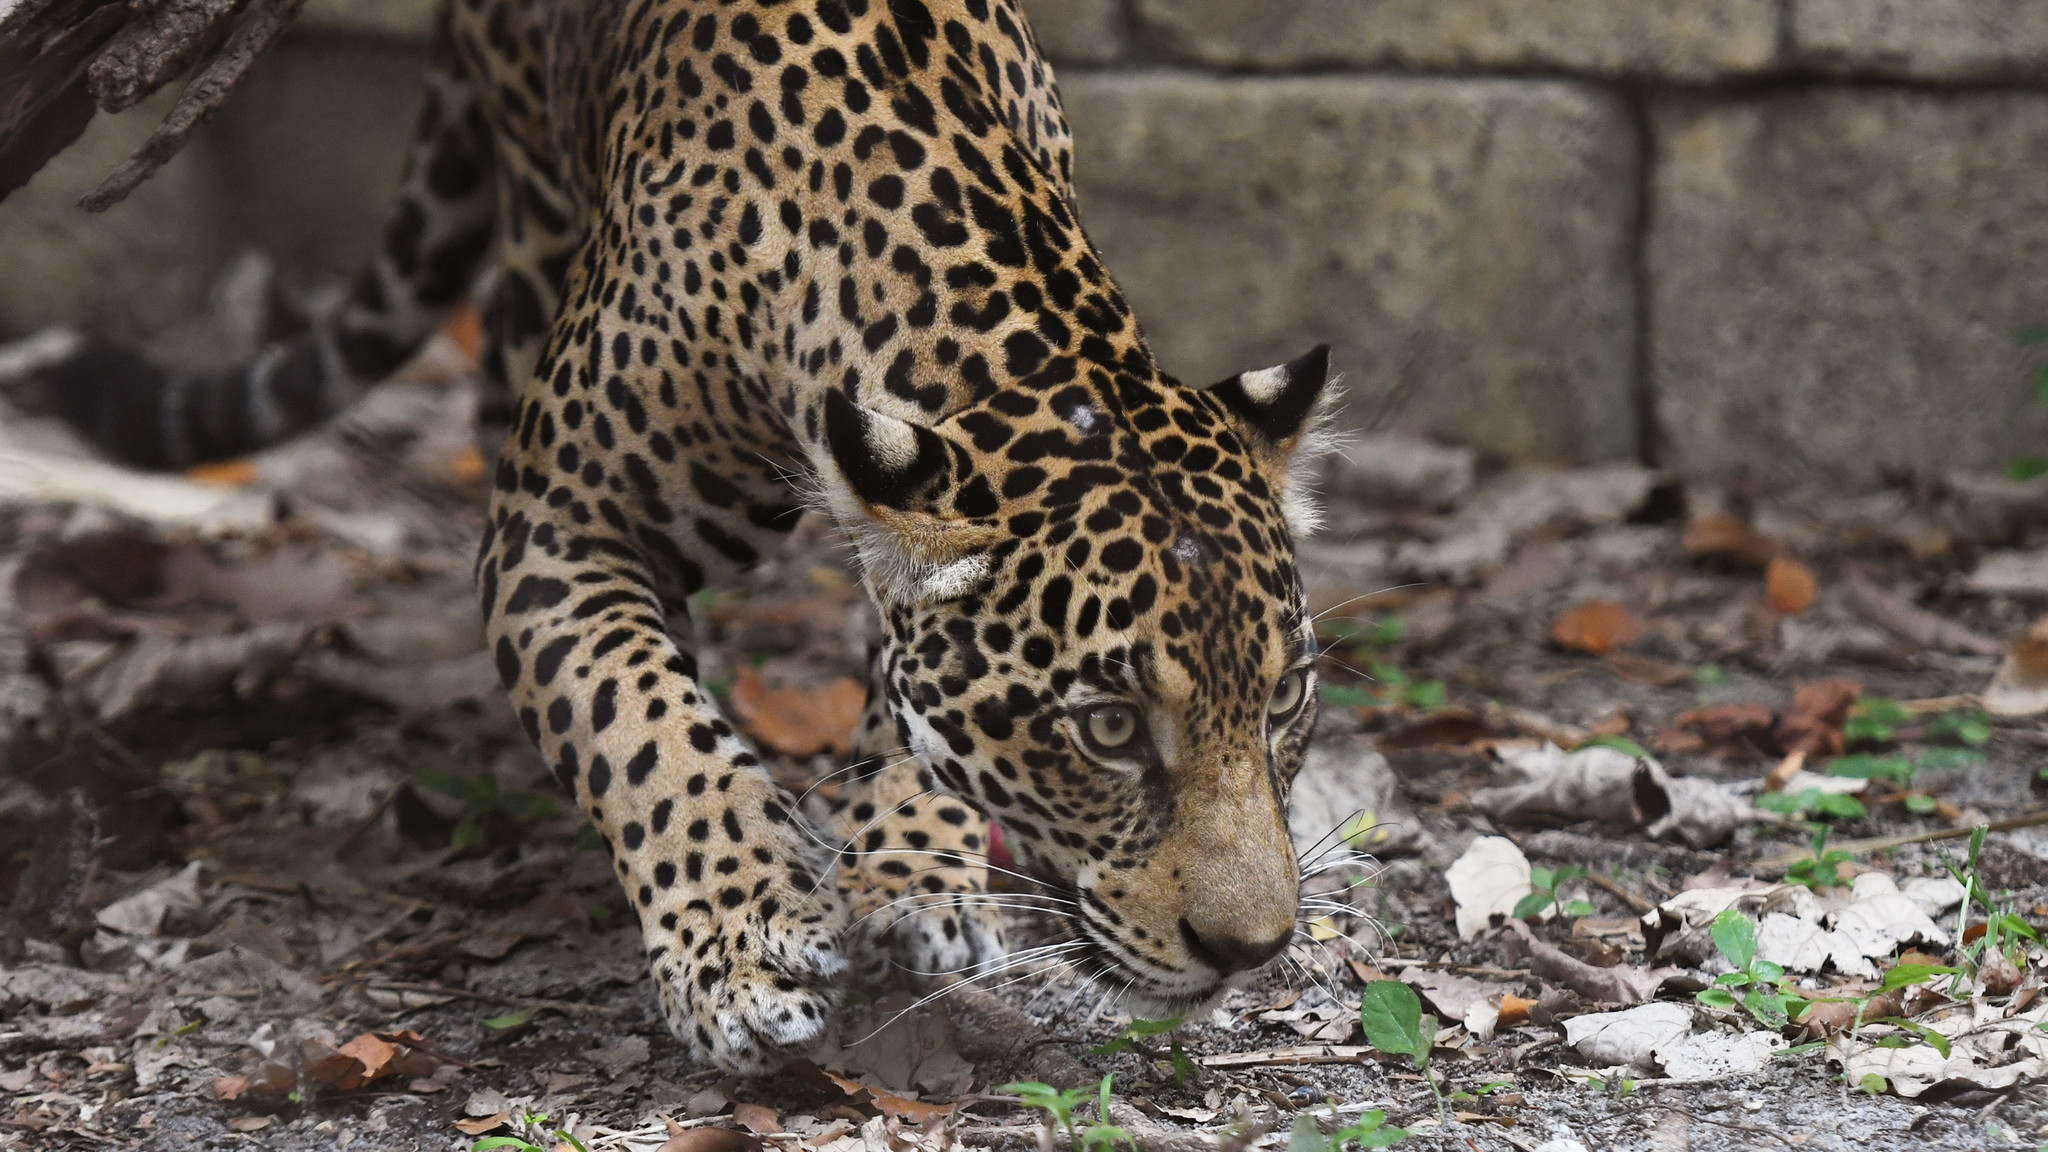 Jaguar, Almost Killed By Hunting Dogs As Cub, Makes Zoo Debut   Sun Sentinel